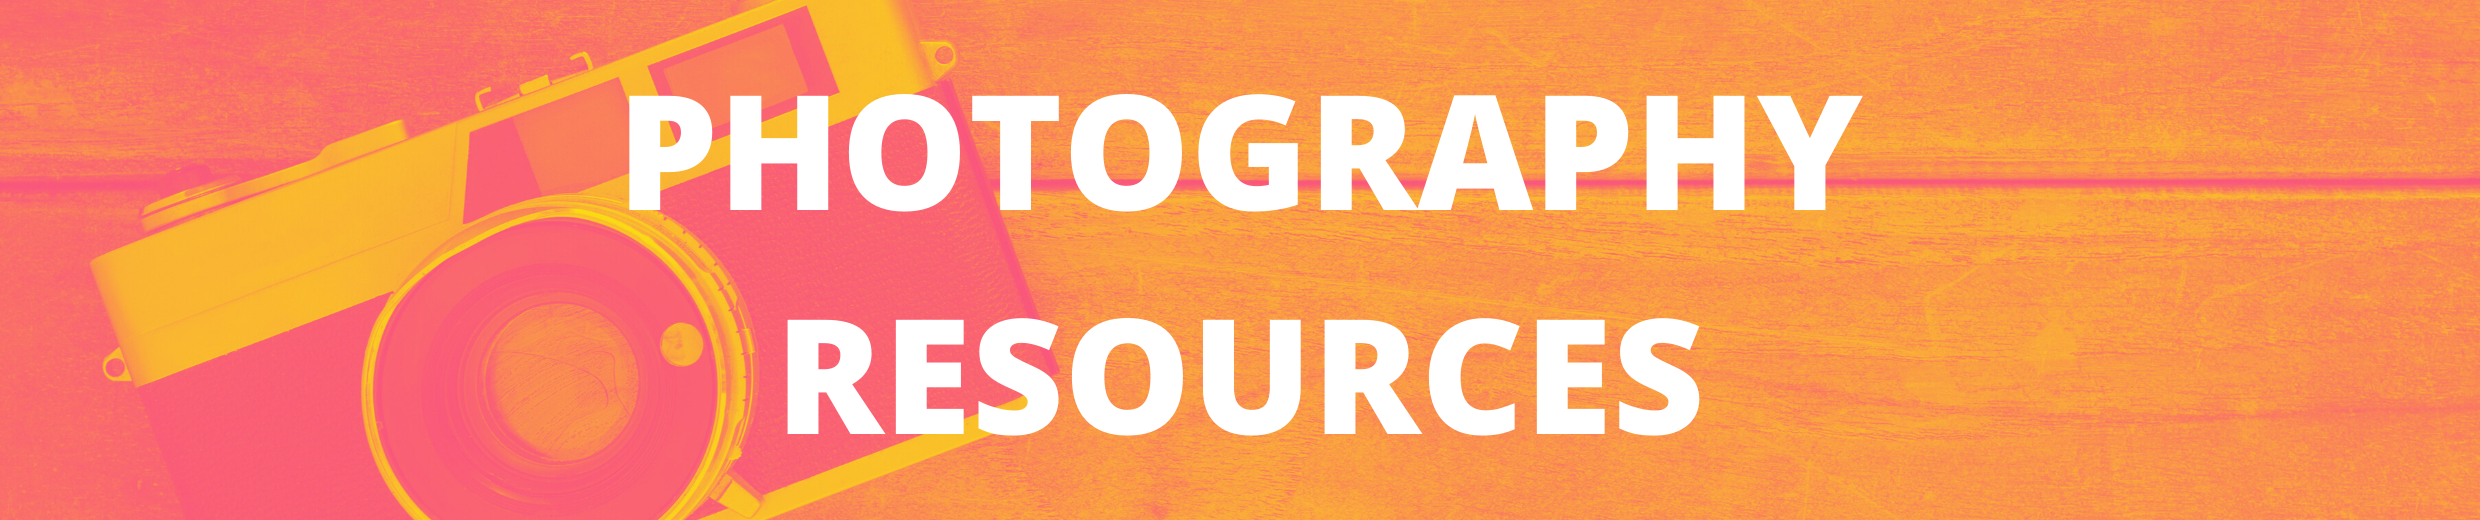 Photography Resources Header